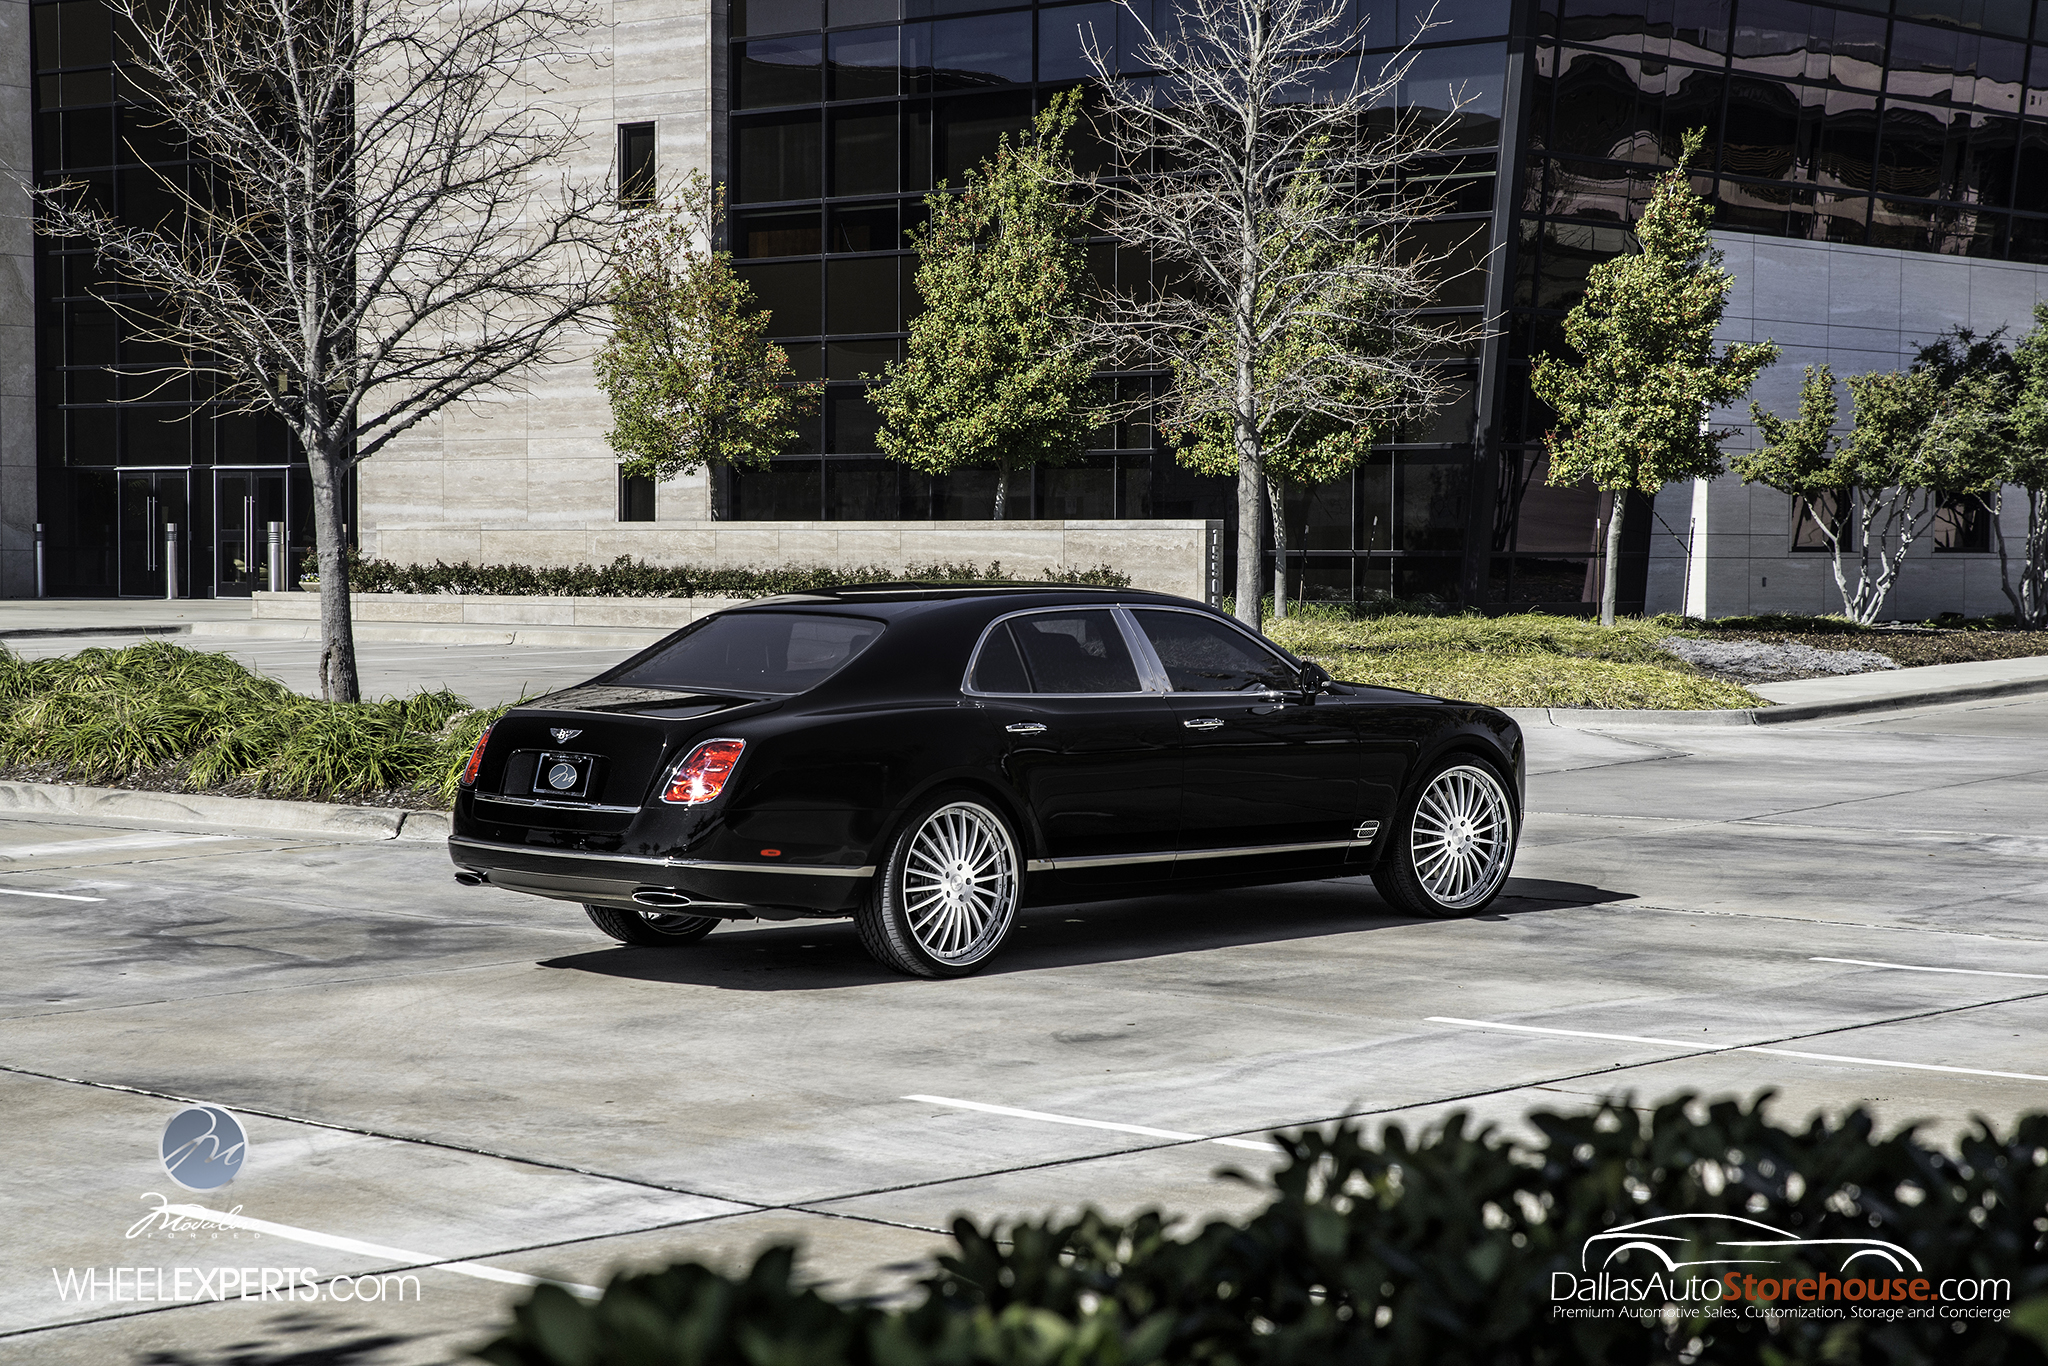 photo 8 Bentley Mulsanne Wheels Modulare M20 24x10.0, ET , tire size 285/30 R24. x ET